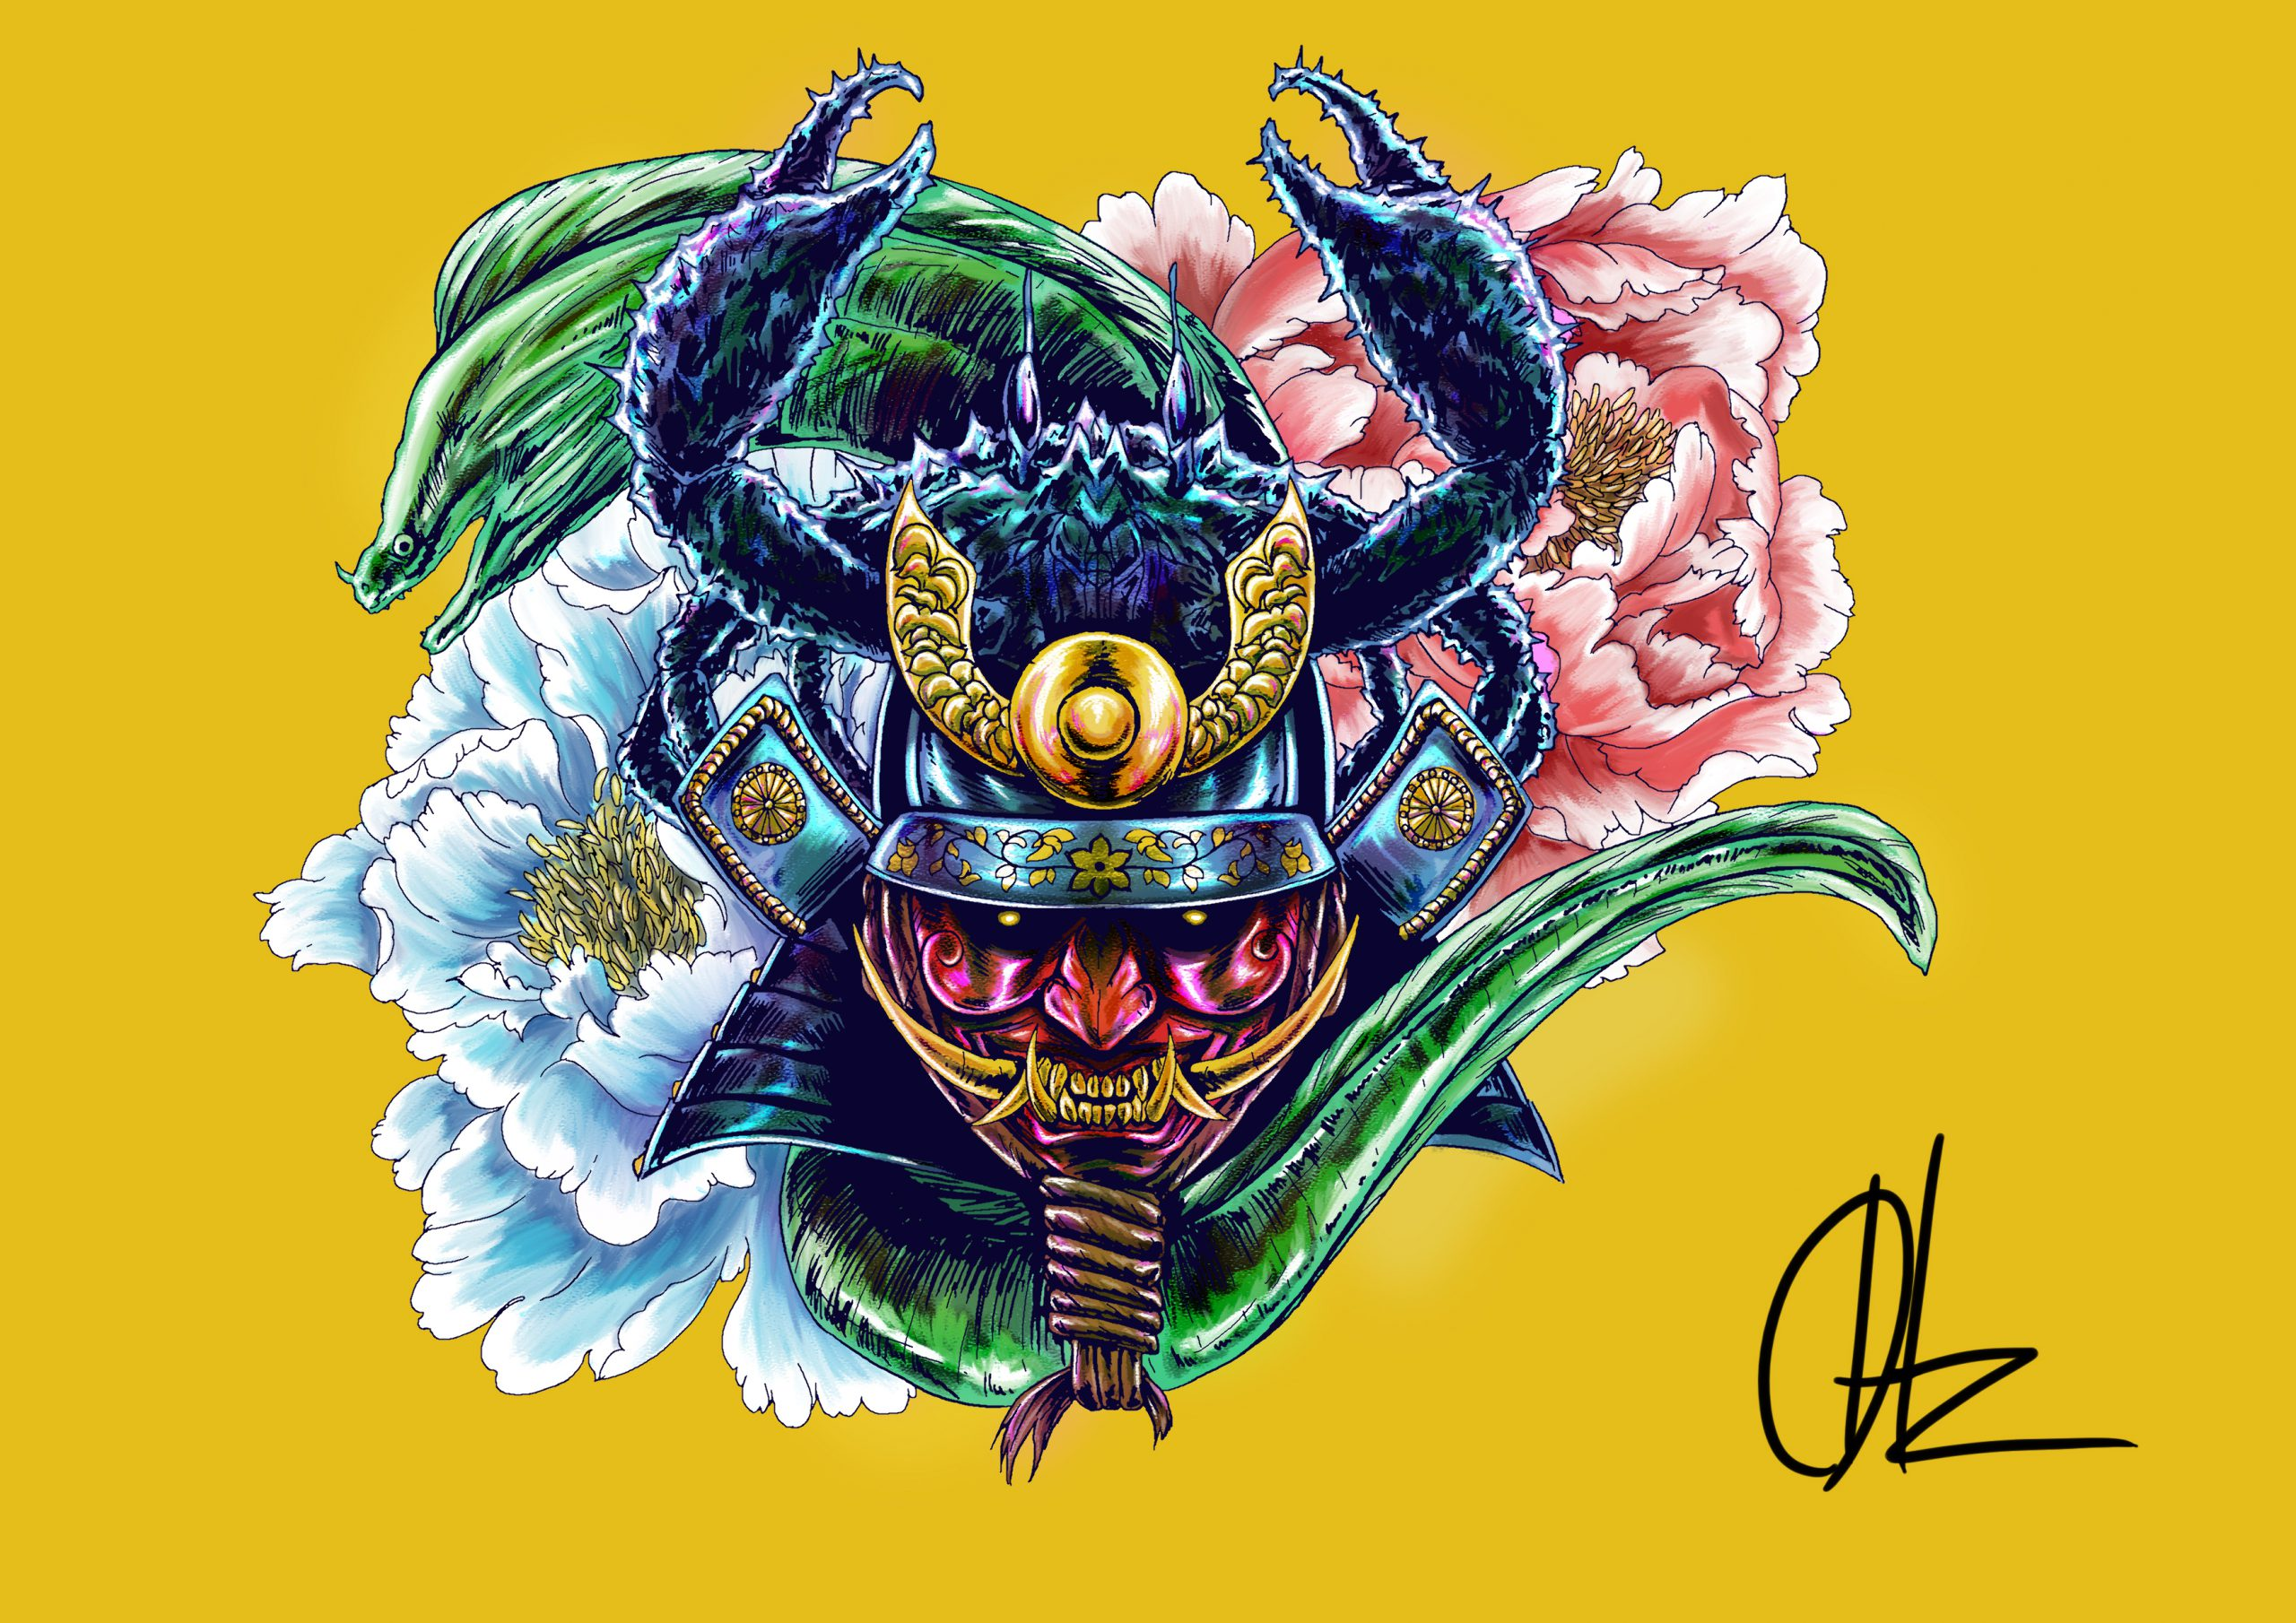 Stylised illustration of a character wearing a samurai helmet adorned with a crab, sea creature and flowers